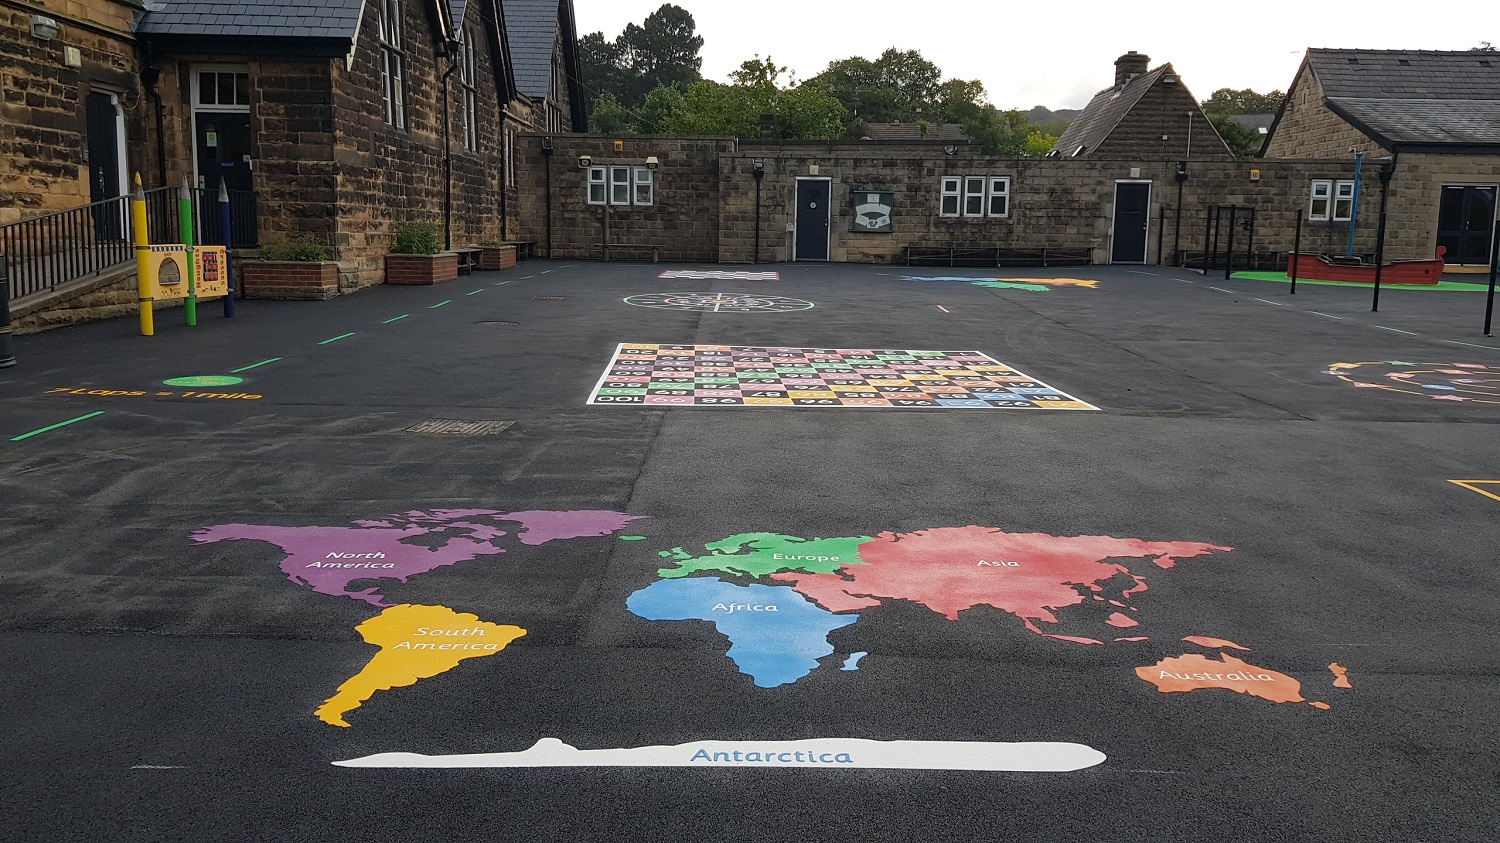 P26 Playground Tarmac Surfacing & Playground Markings at Ashover Primary School in Ashover